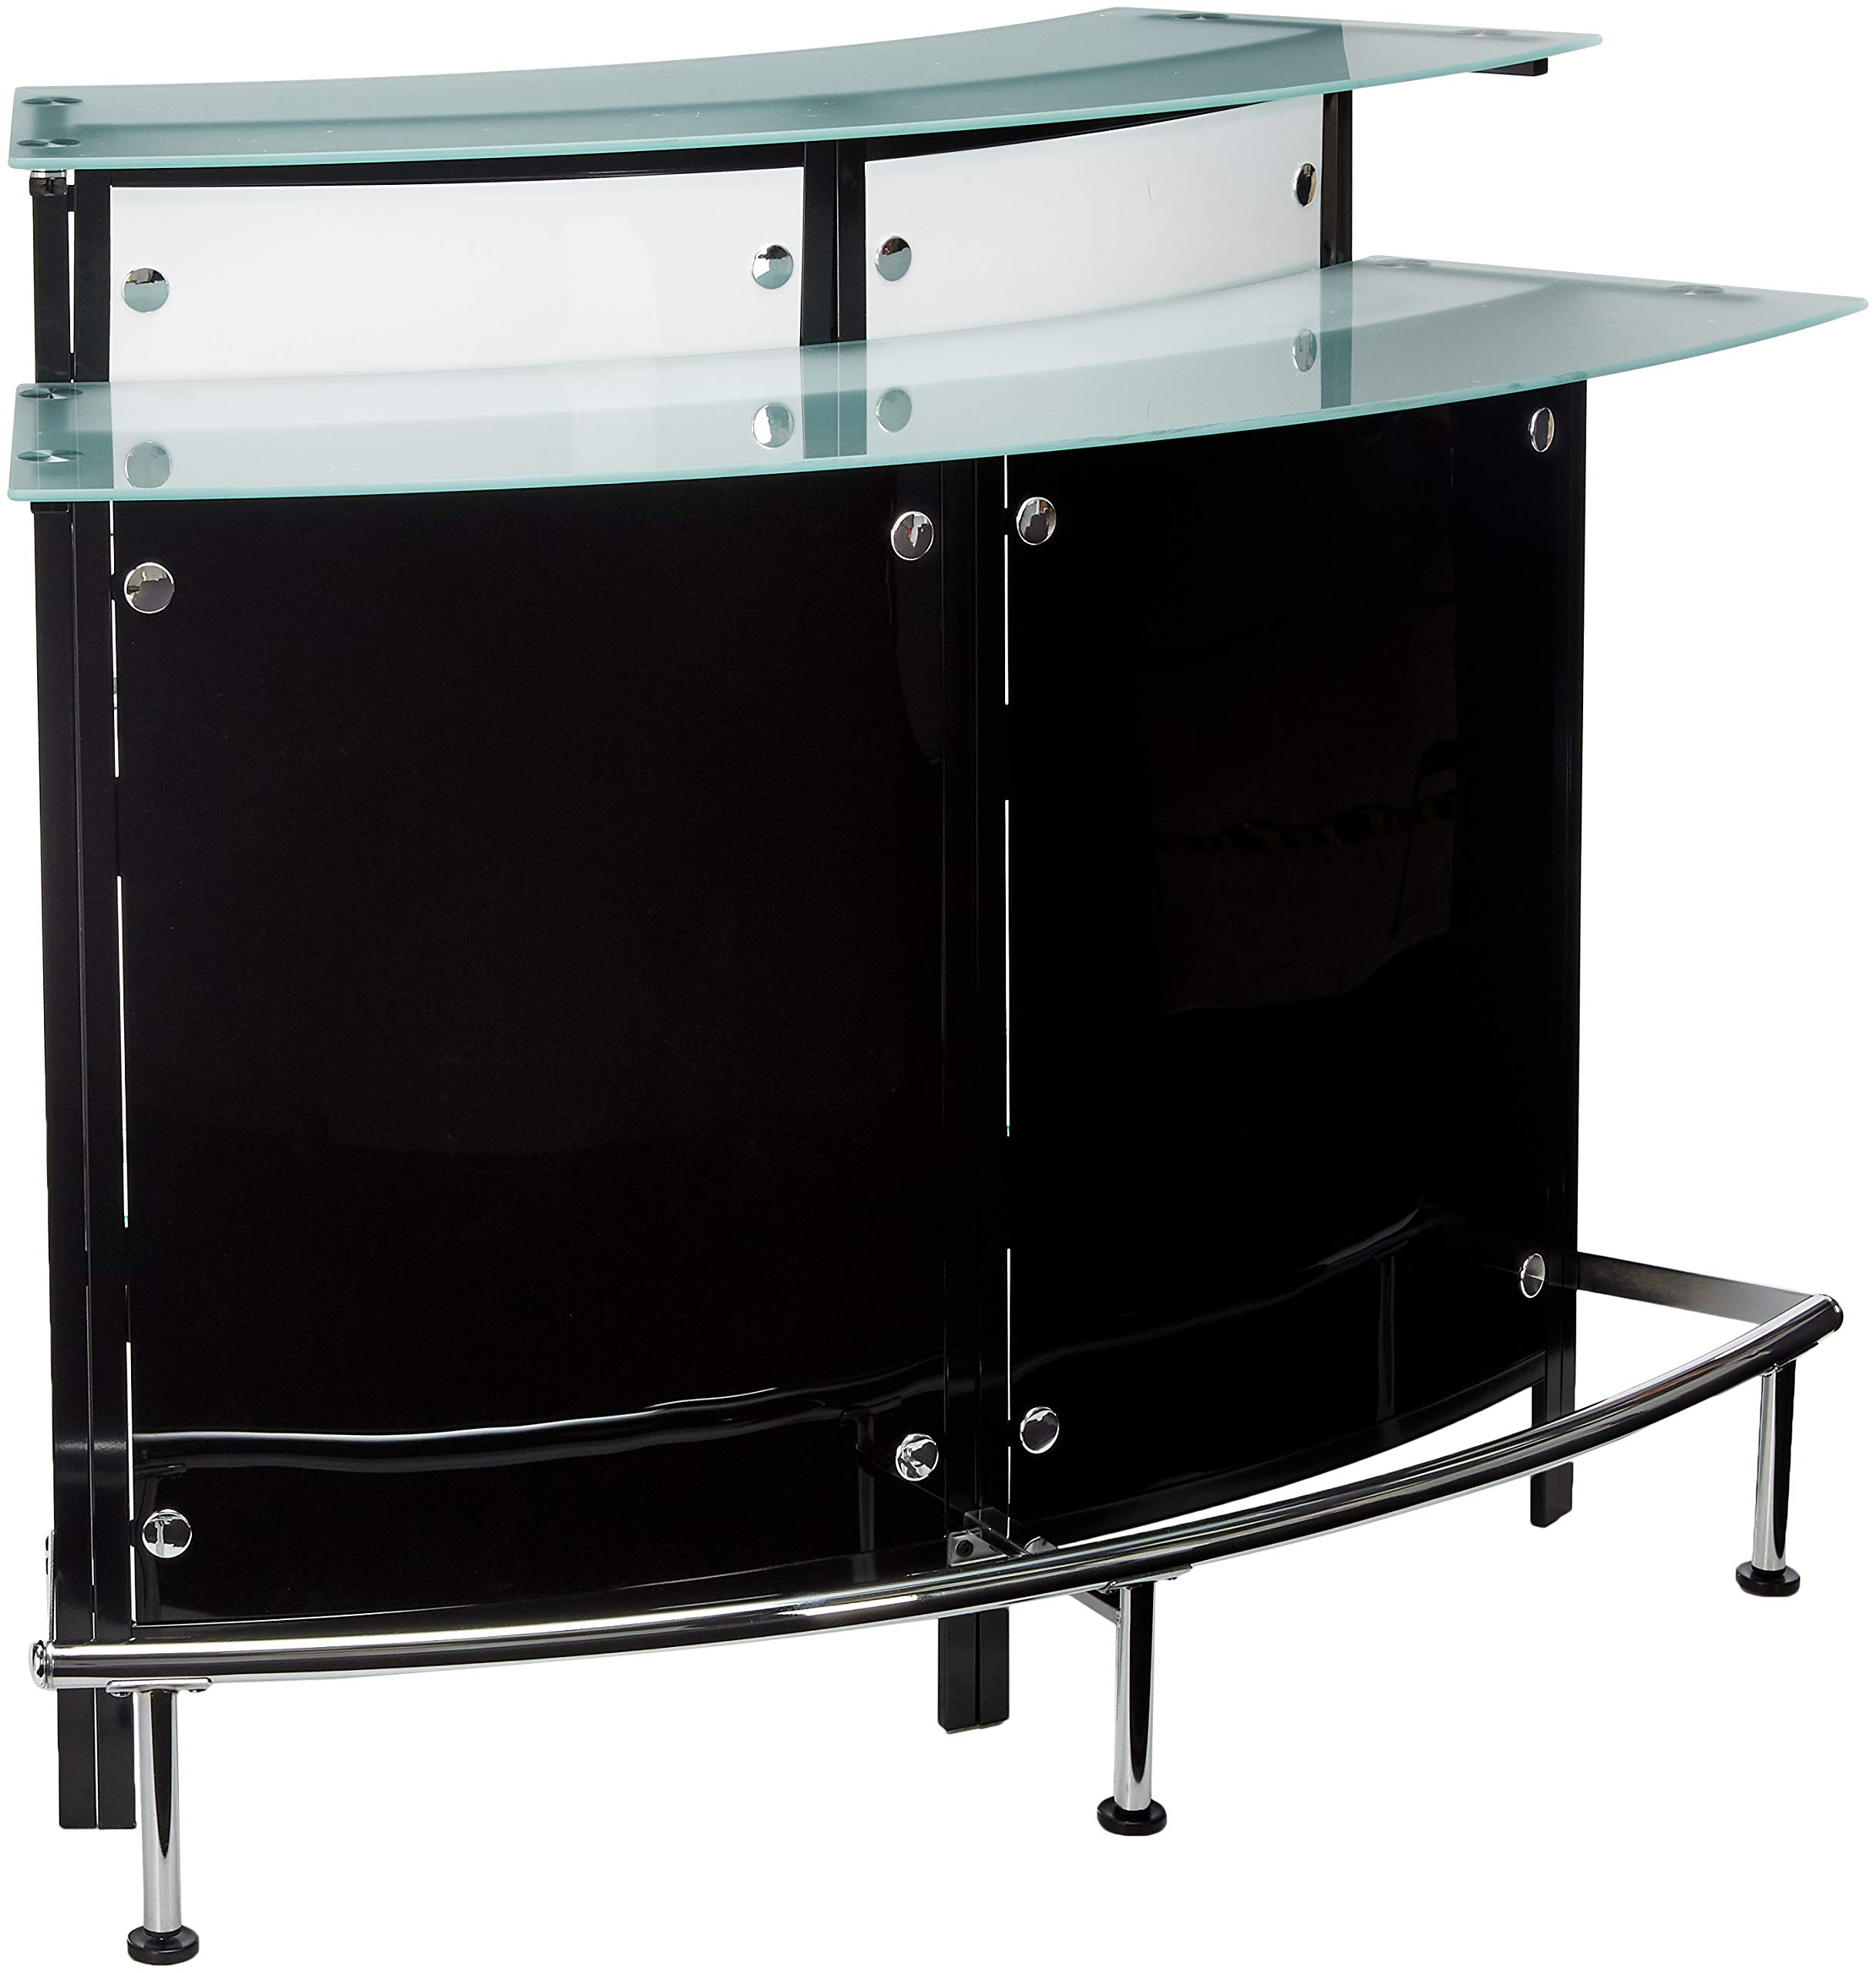 Arched 1-shelf Bar Unit with Glass Counter Tops Glossy Black, Chrome, Frosted and Clear by Coaster Home Furnishings